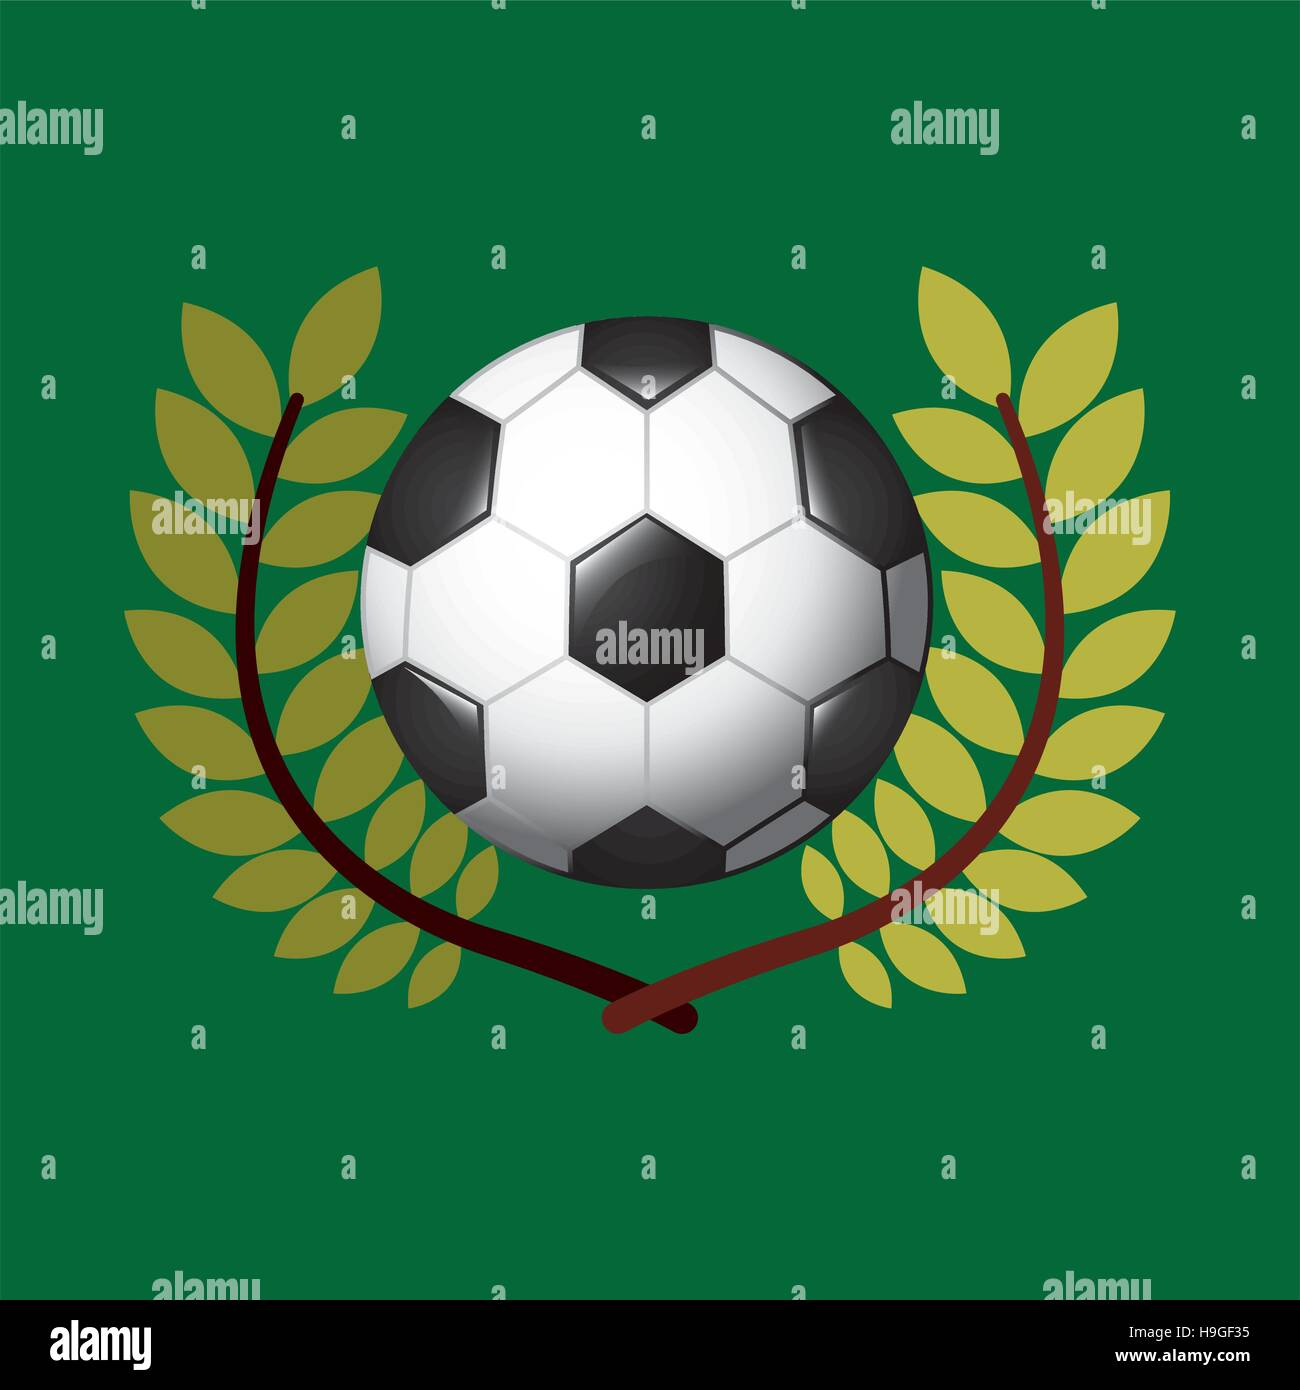 football olympic games emblem vector illustration eps 10 - Stock Vector